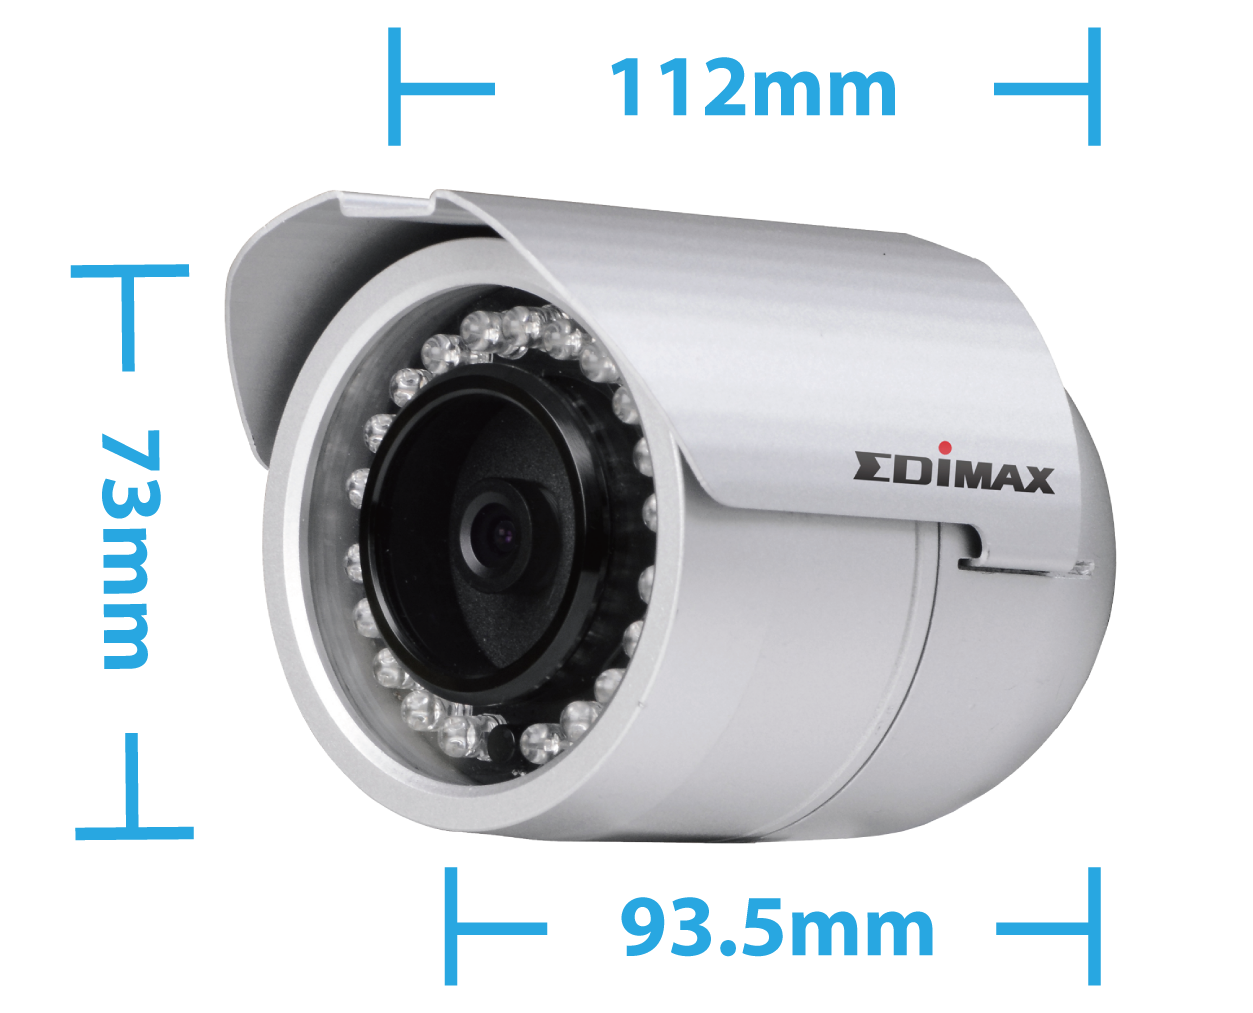 Edimax IR-112E 2Mpx Outdoor PoE True Day & Night Bullet Network Camera Bullet Network Camera IR-112E_Compact_Bullet_design.png